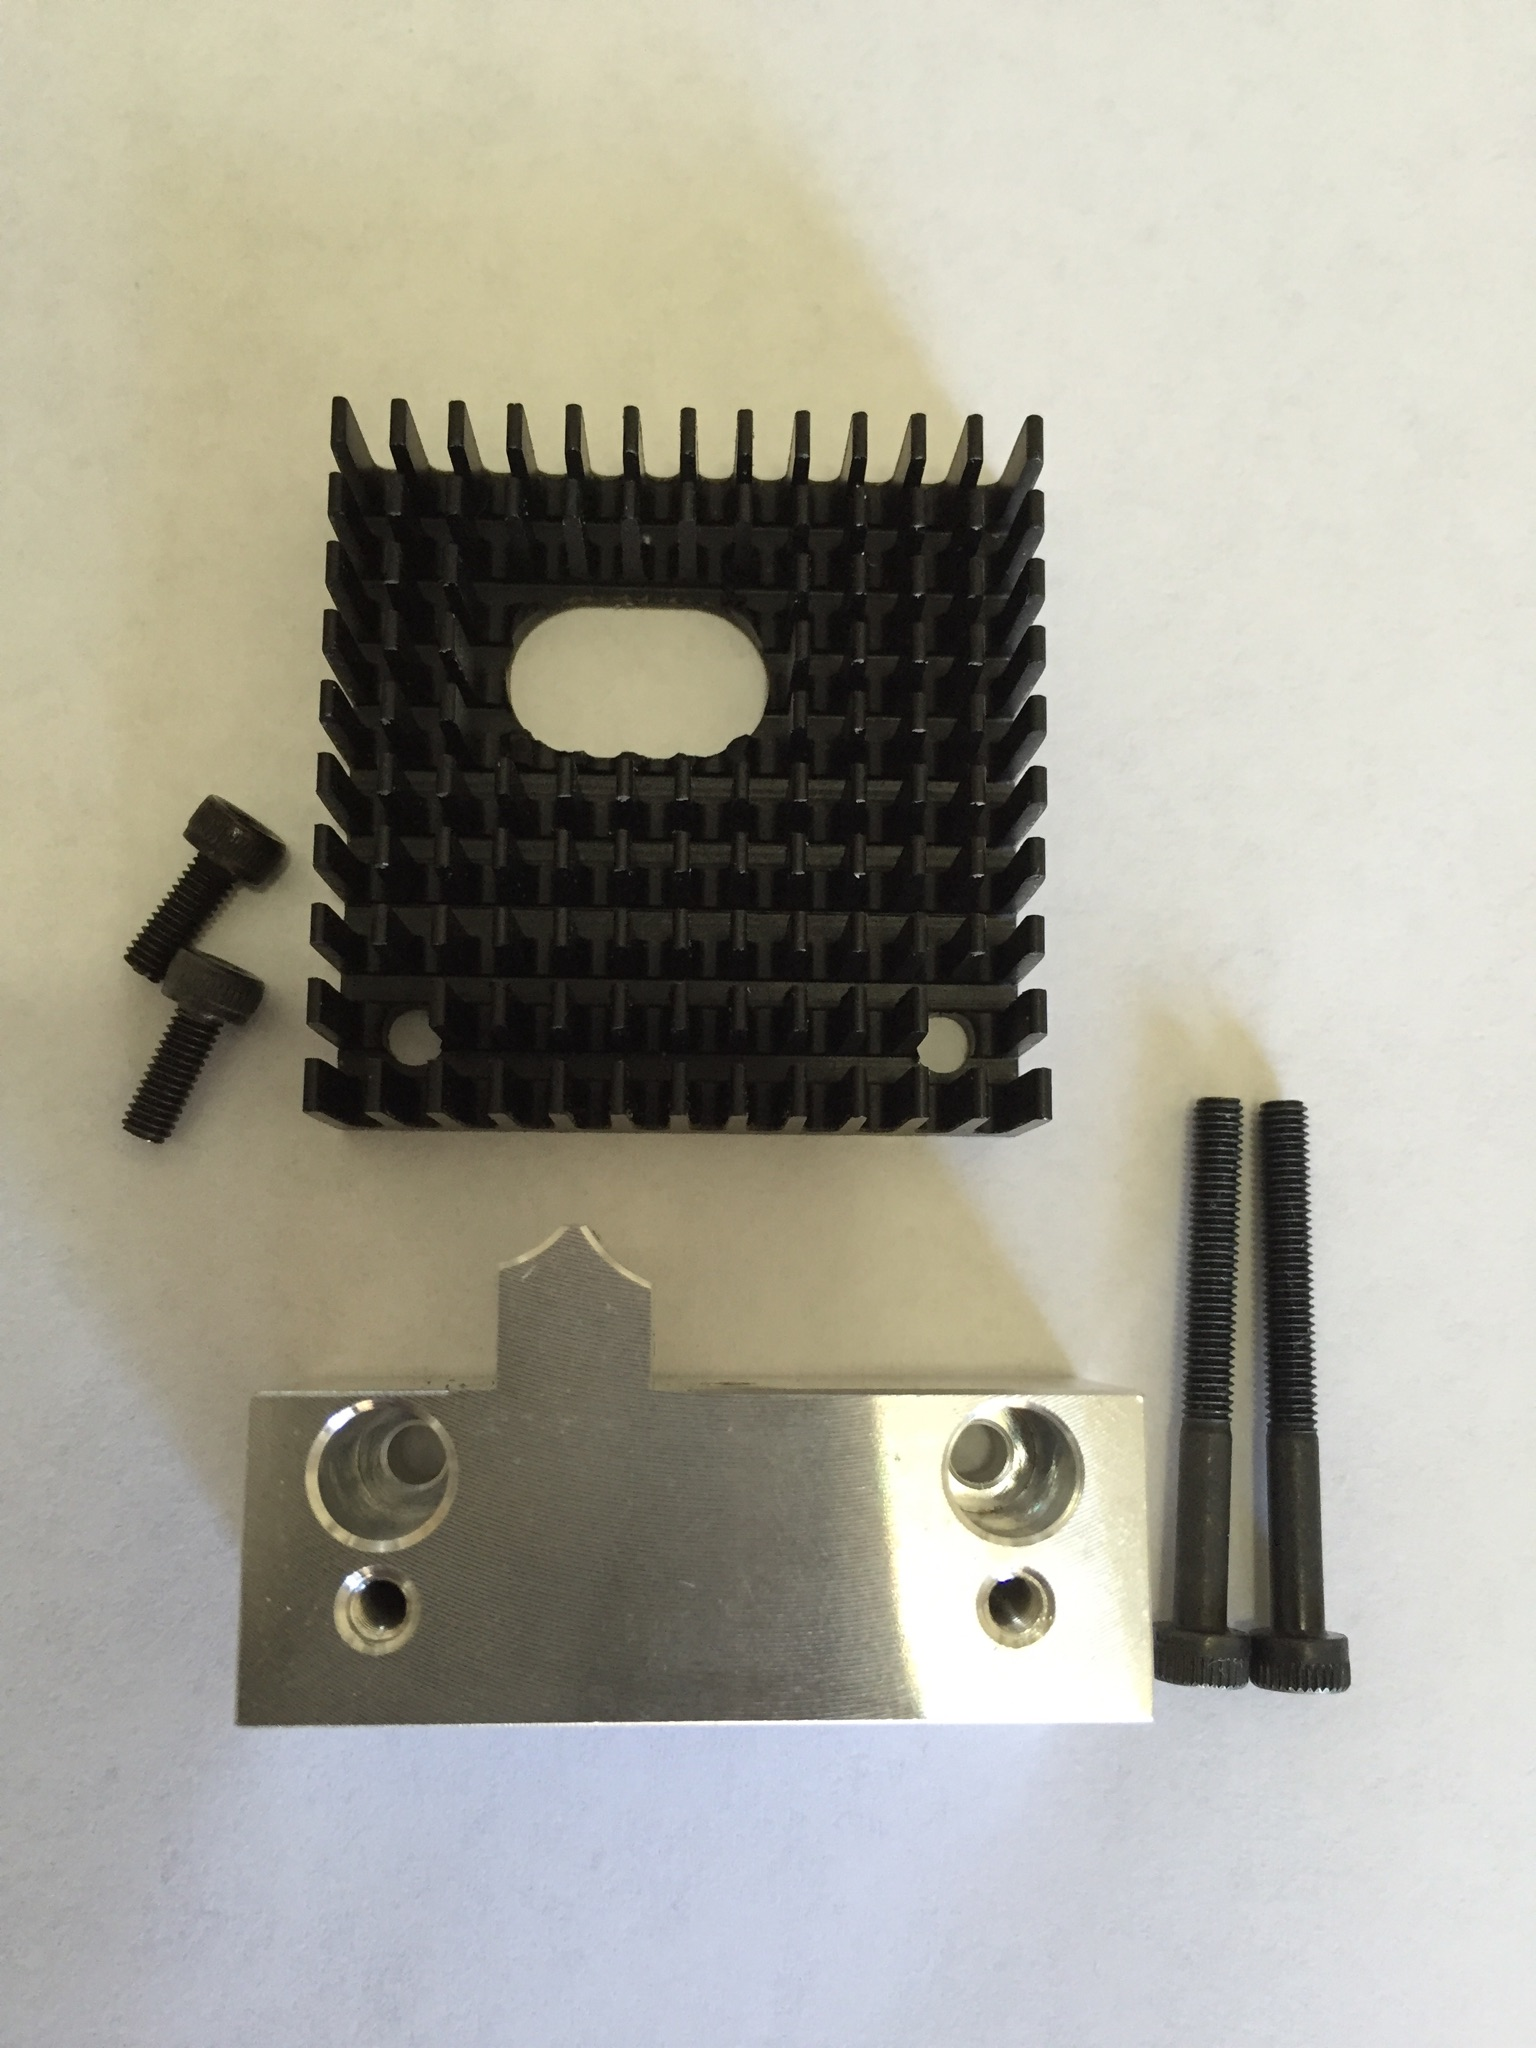 Extruder Mounting Block Upgrade Kit